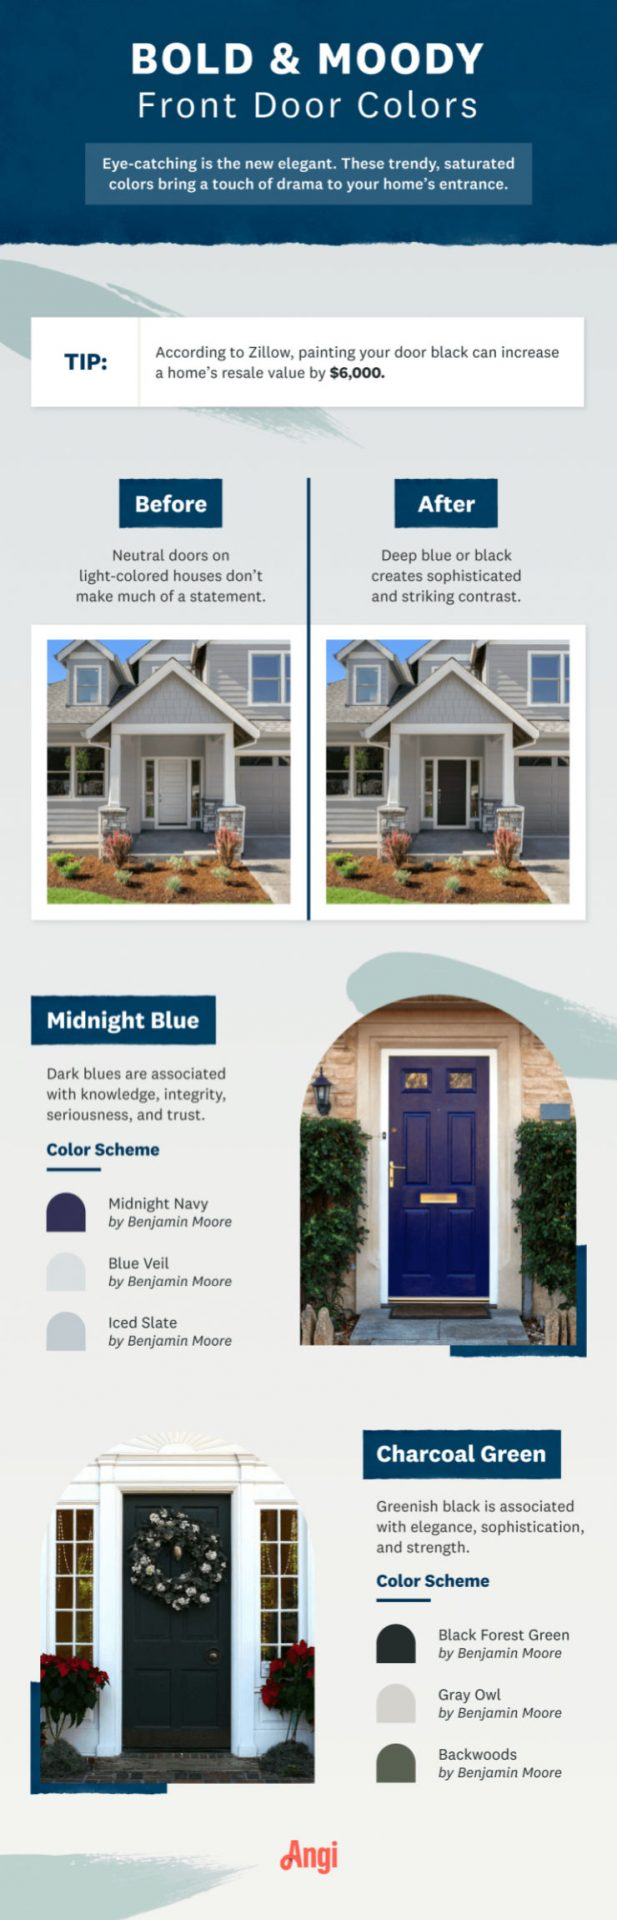 infographic bold and mood doors